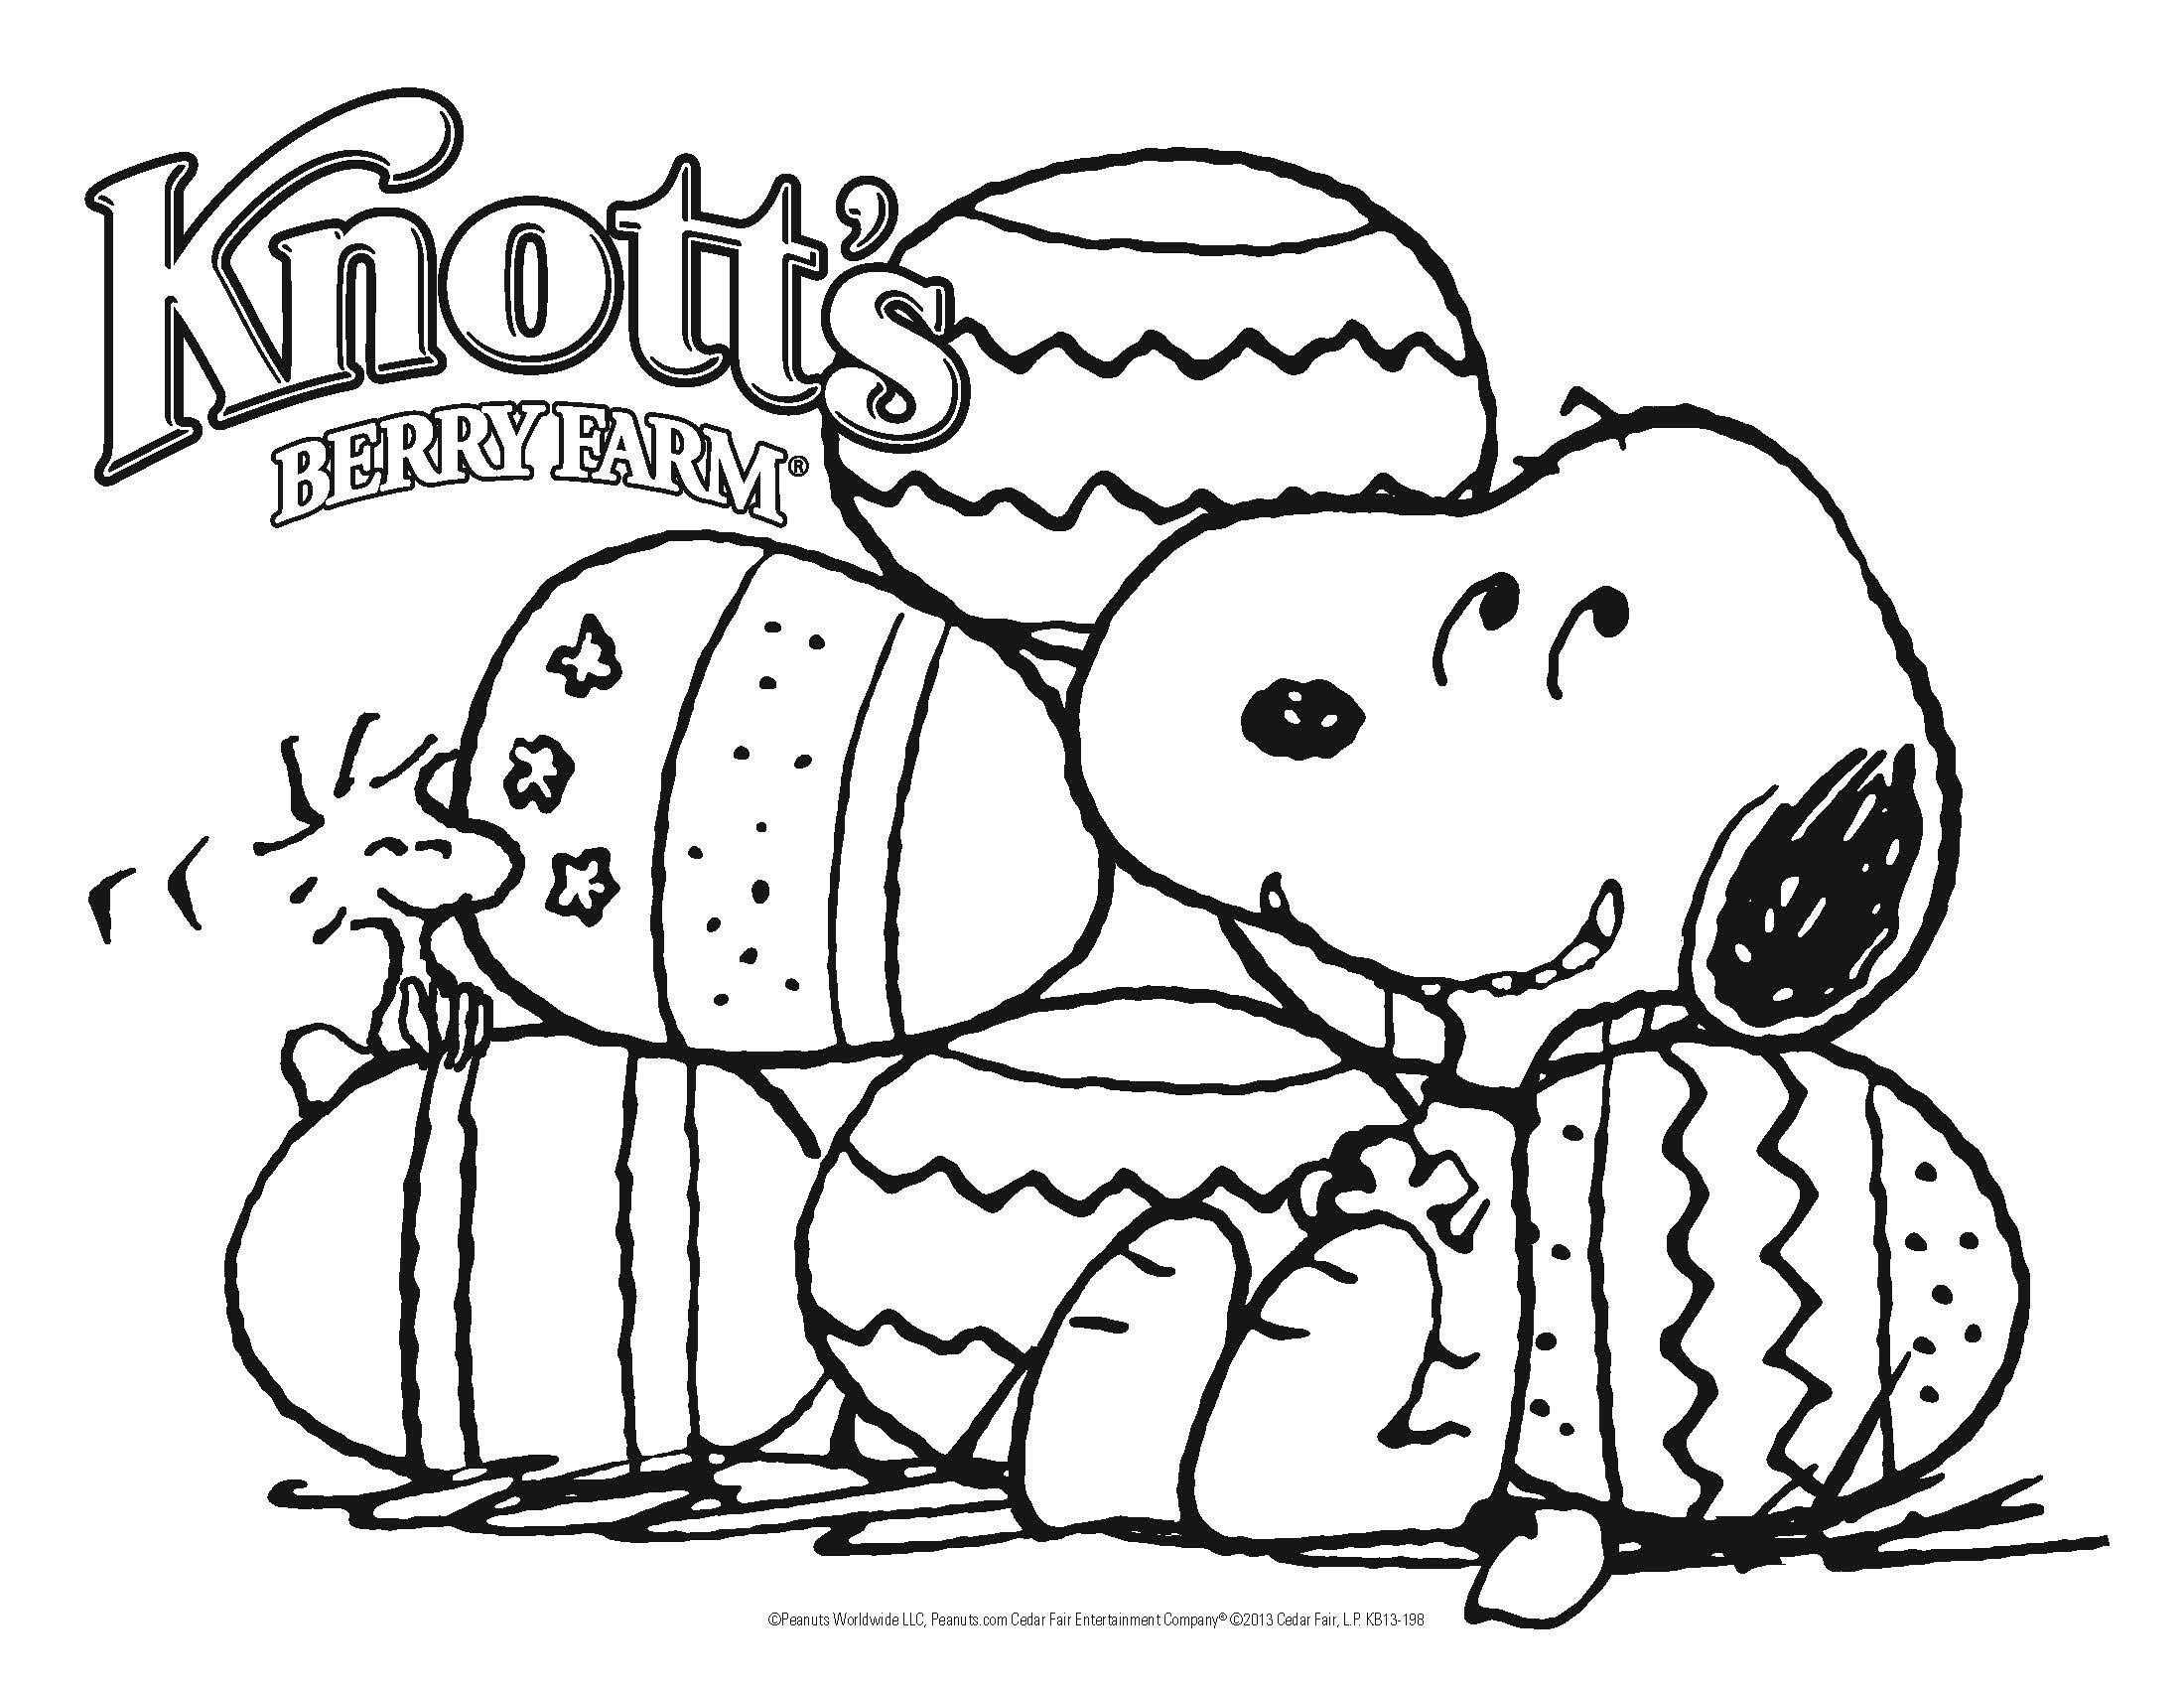 snoopy coloring pages - Google Search | Kids Crafts | Pinterest ...